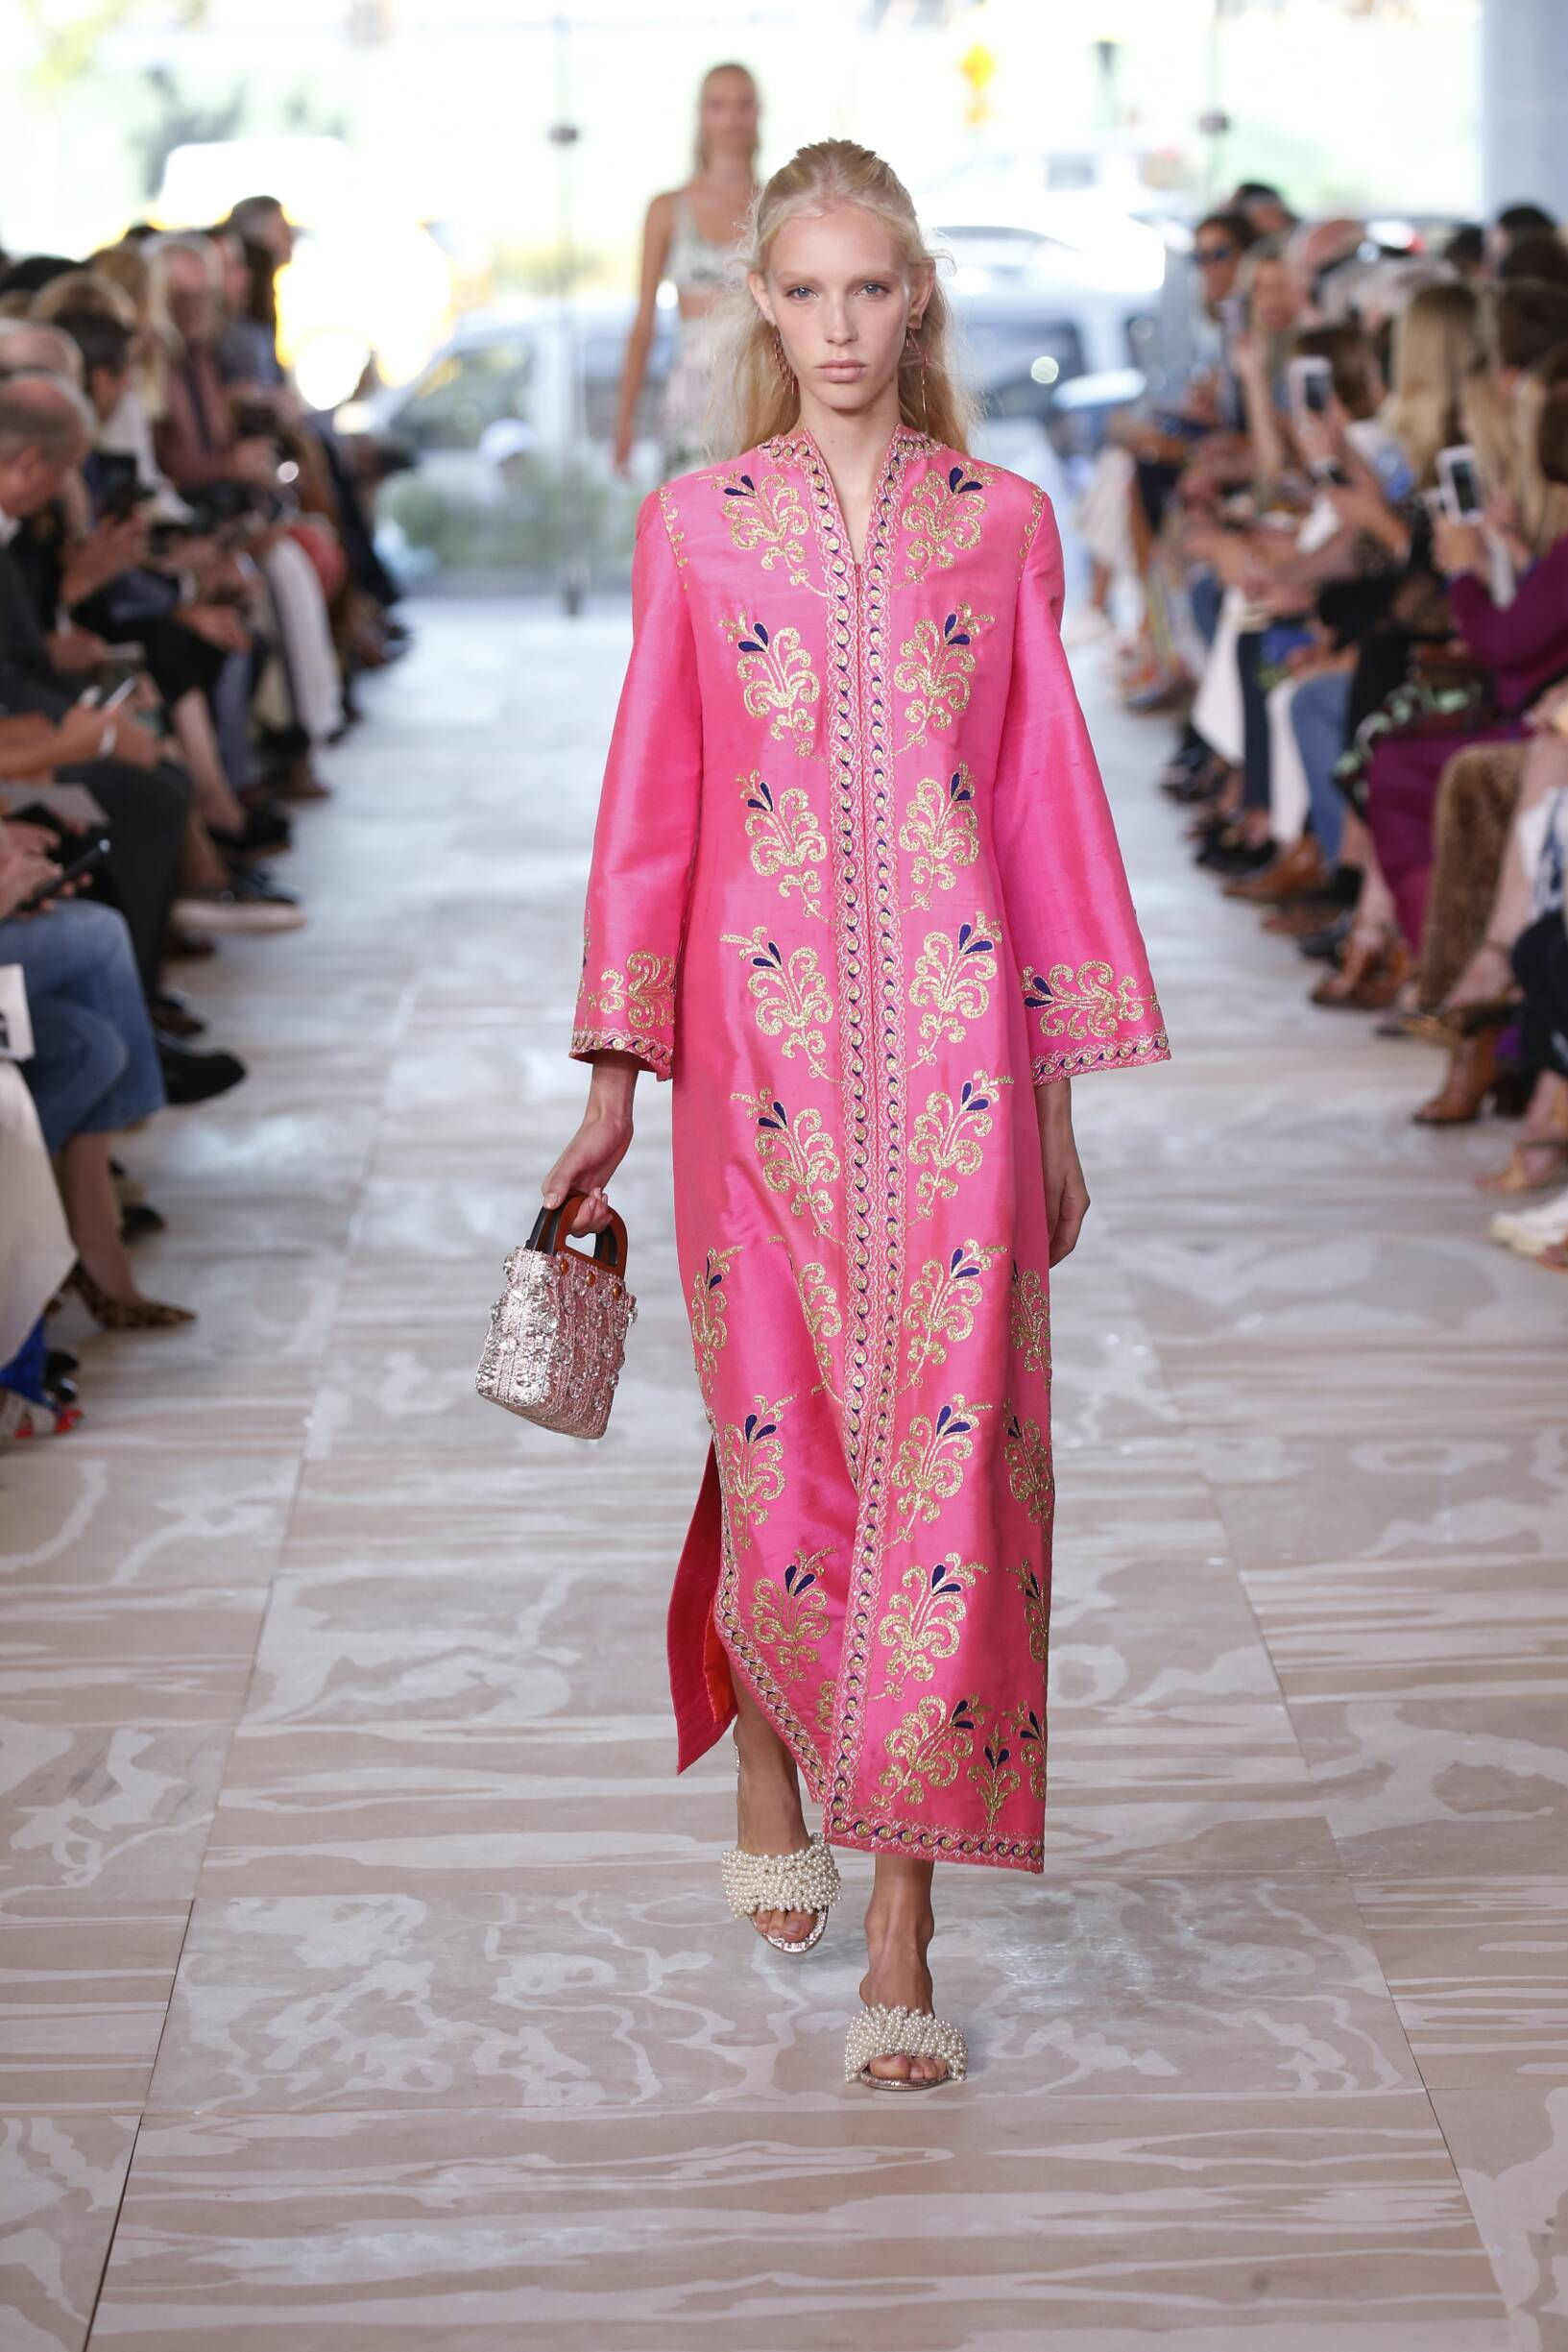 2017 Catwalk Tory Burch Woman Fashion Show Summer